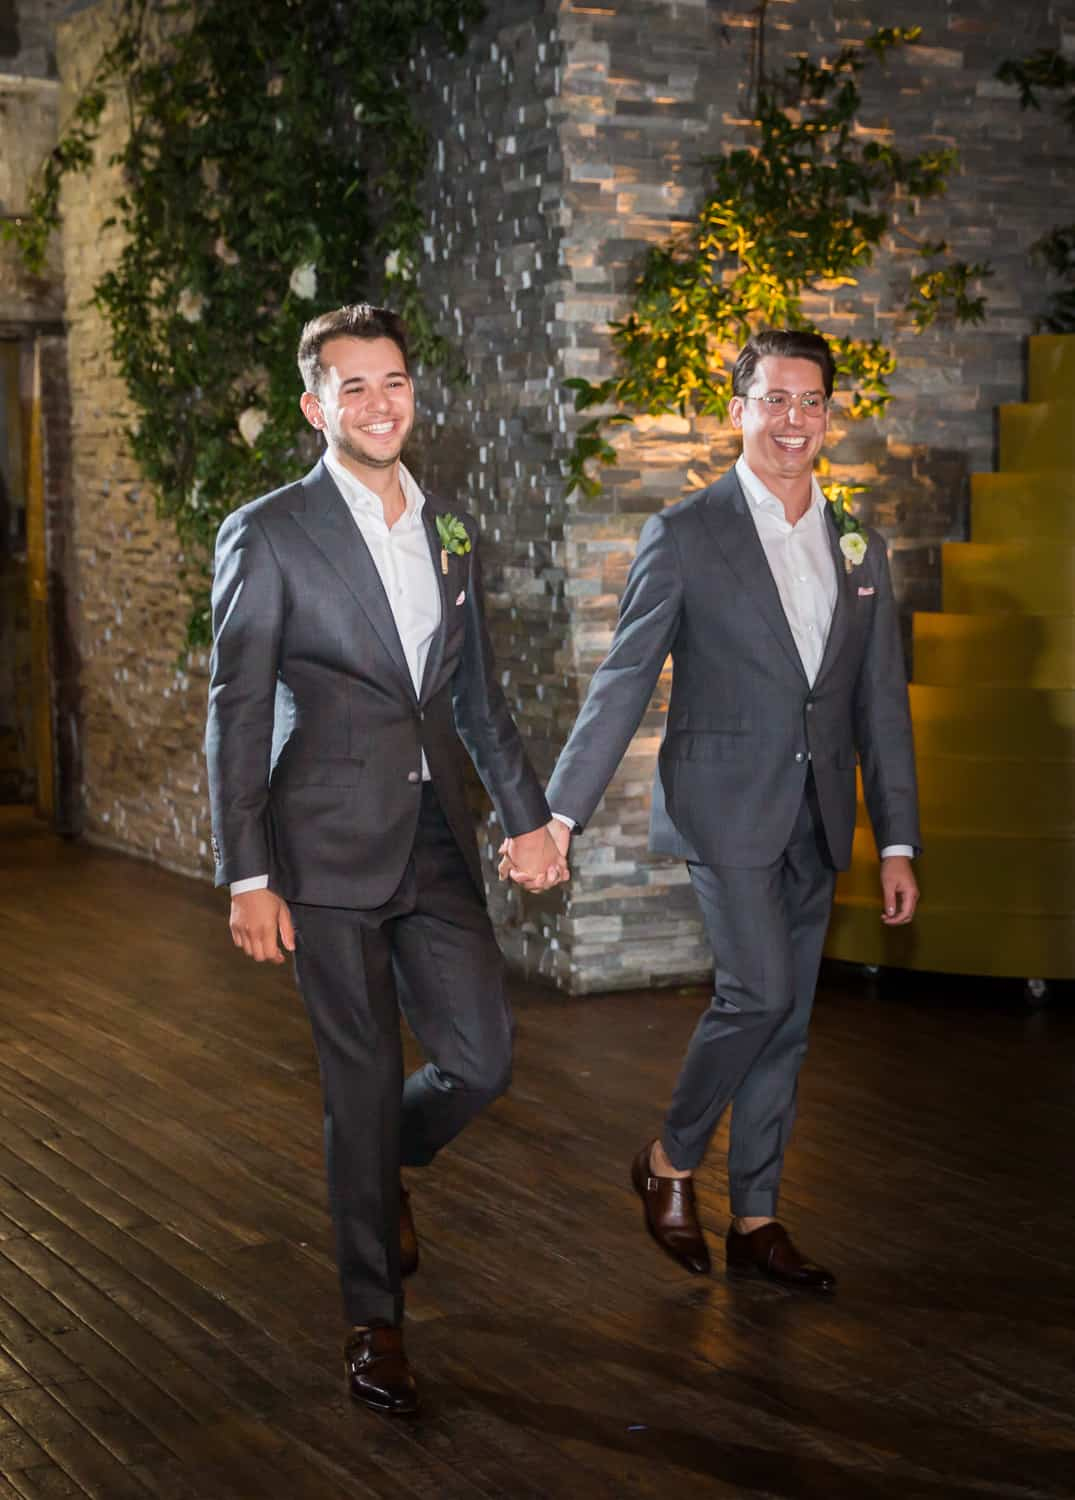 Greenpoint Loft wedding photos of two grooms entering reception